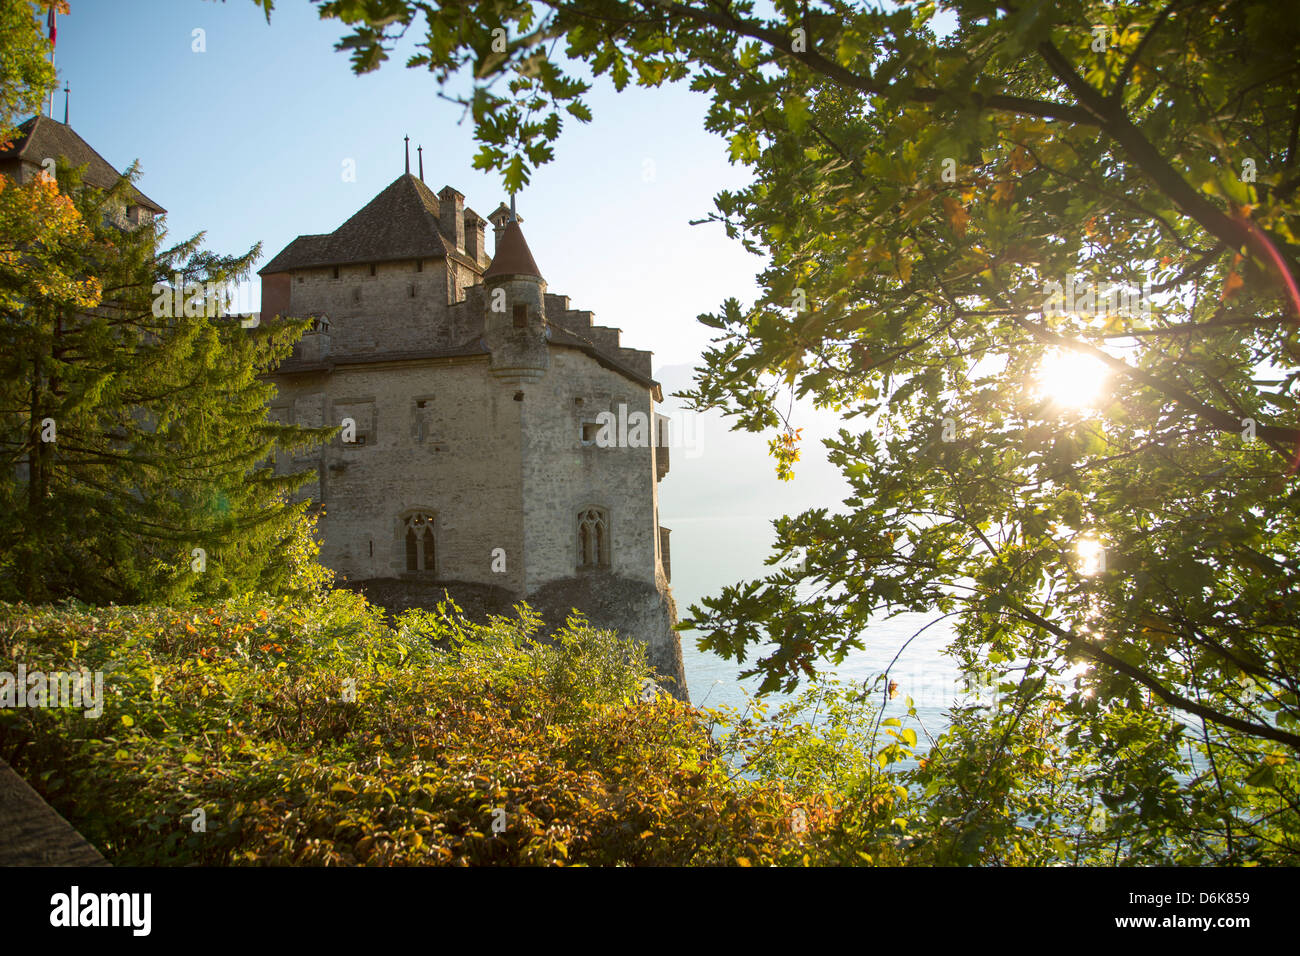 The Castle of Chillon, on Lake Geneva, Montreux, Canton Vaud, Switzerland, Europe - Stock Image